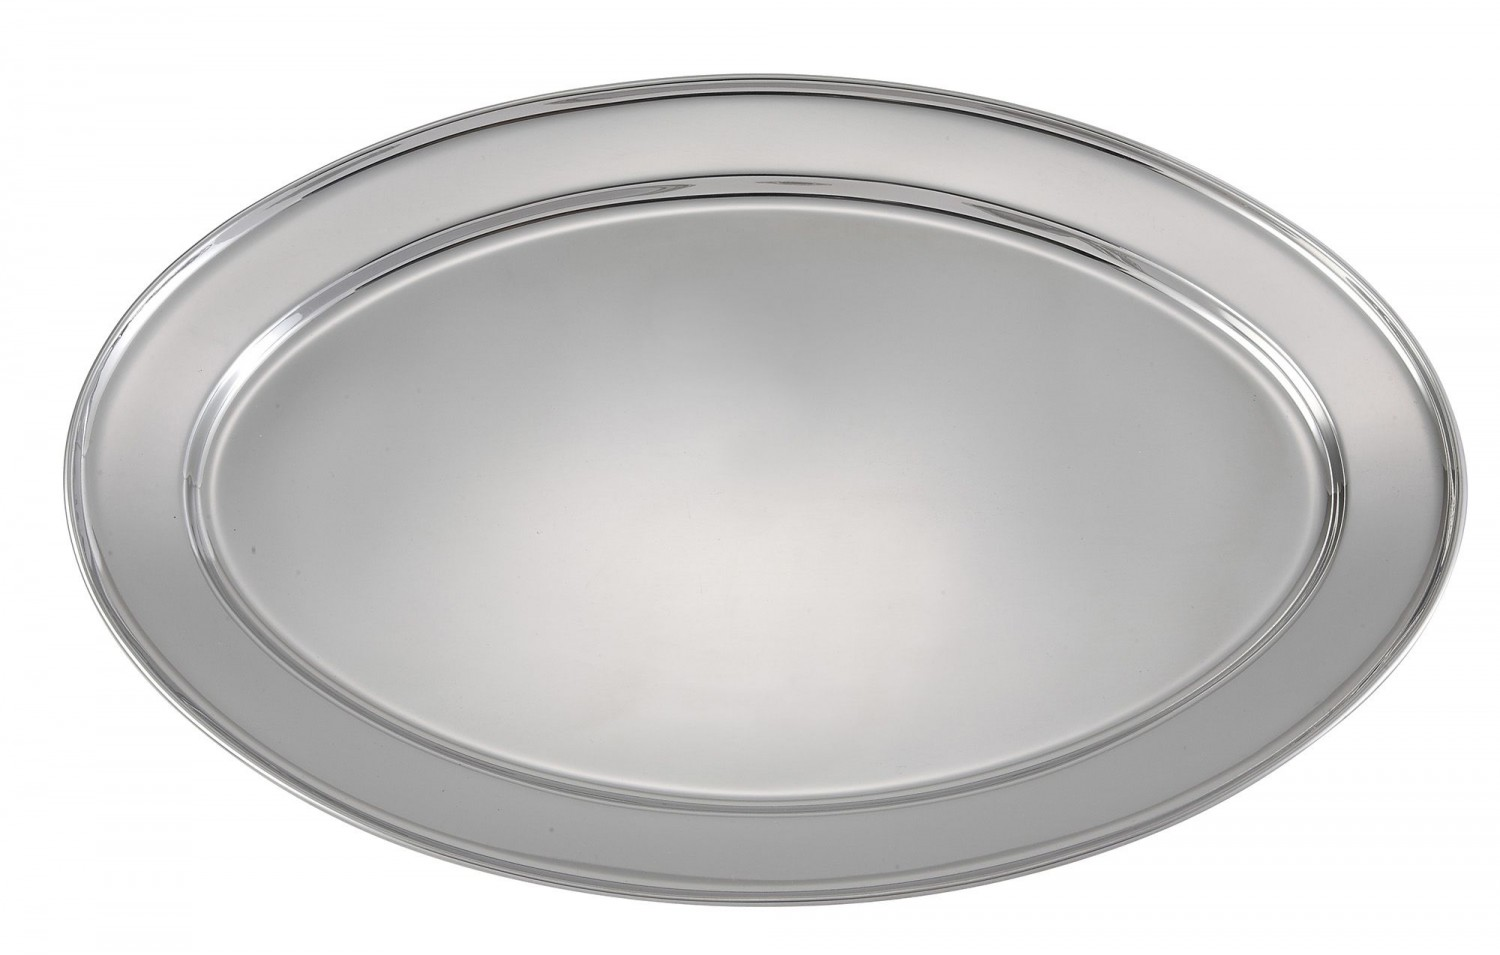 "Winco OPL-20 Stainless Steel Oval Platter 19-5/8"" x 13-1/2&quot ;"